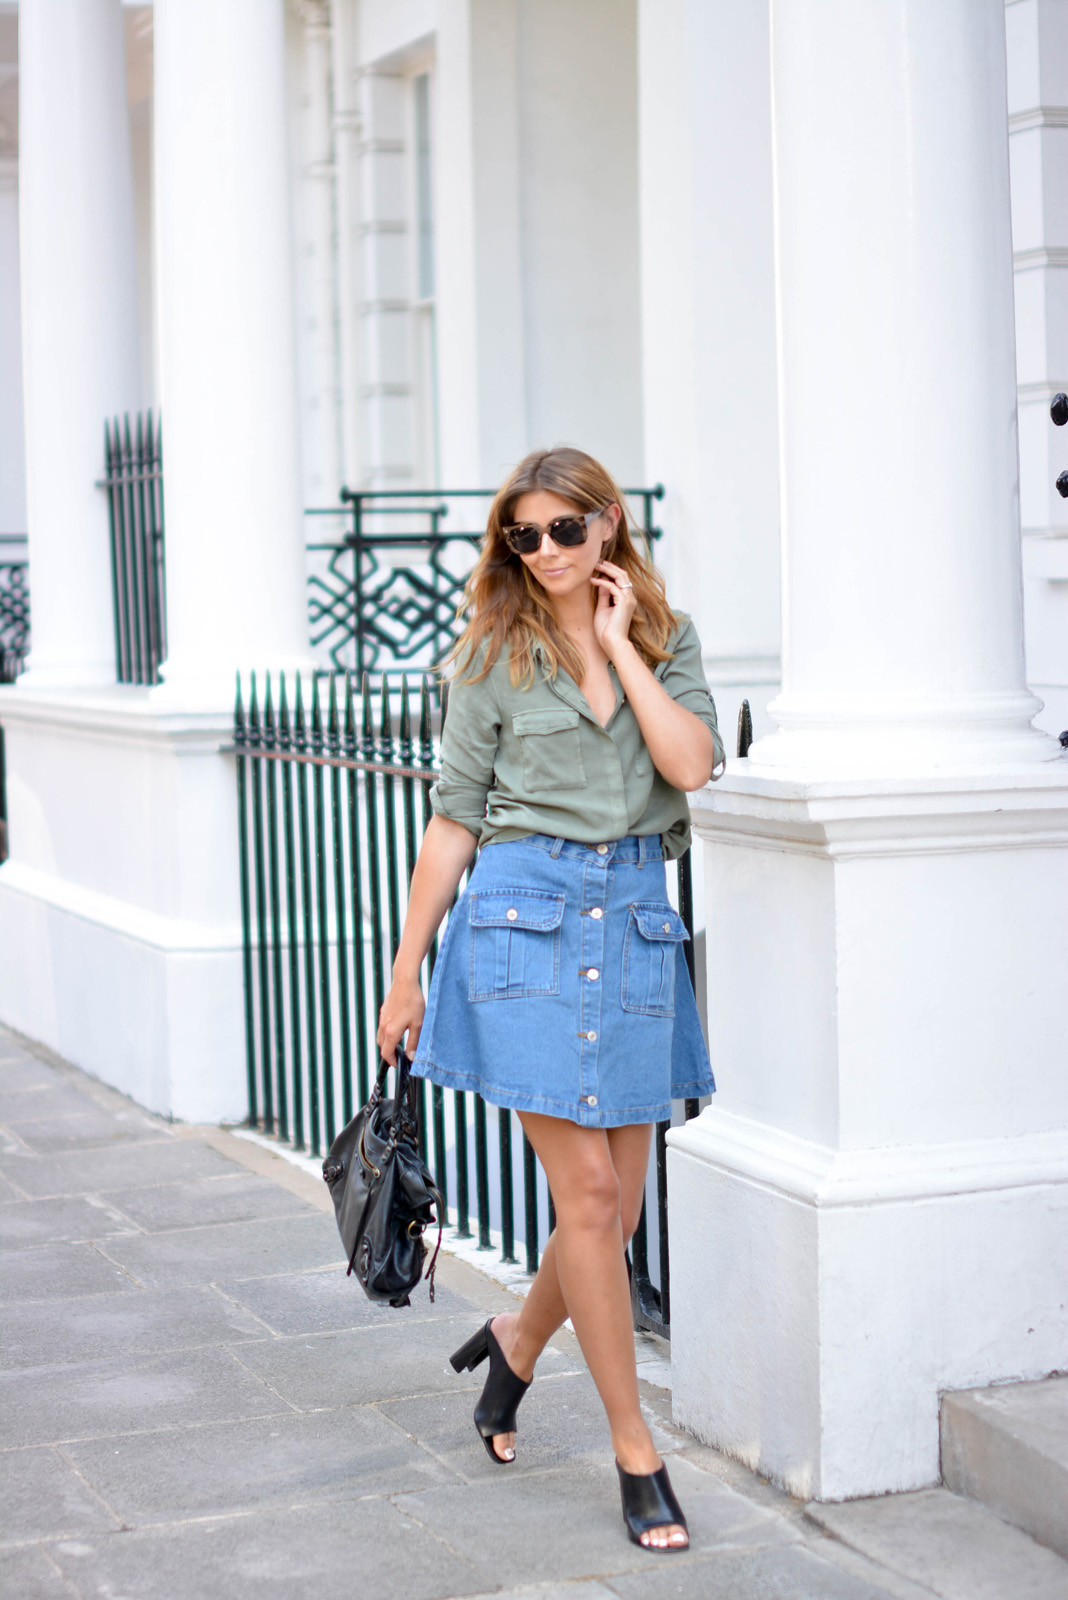 EJSTYLE - Emma Hill wears button up denim skirt with pockets with a khaki shirt, Balenciaga bag, black leather mules, heels, how to dress for summer, OOTD, summer style